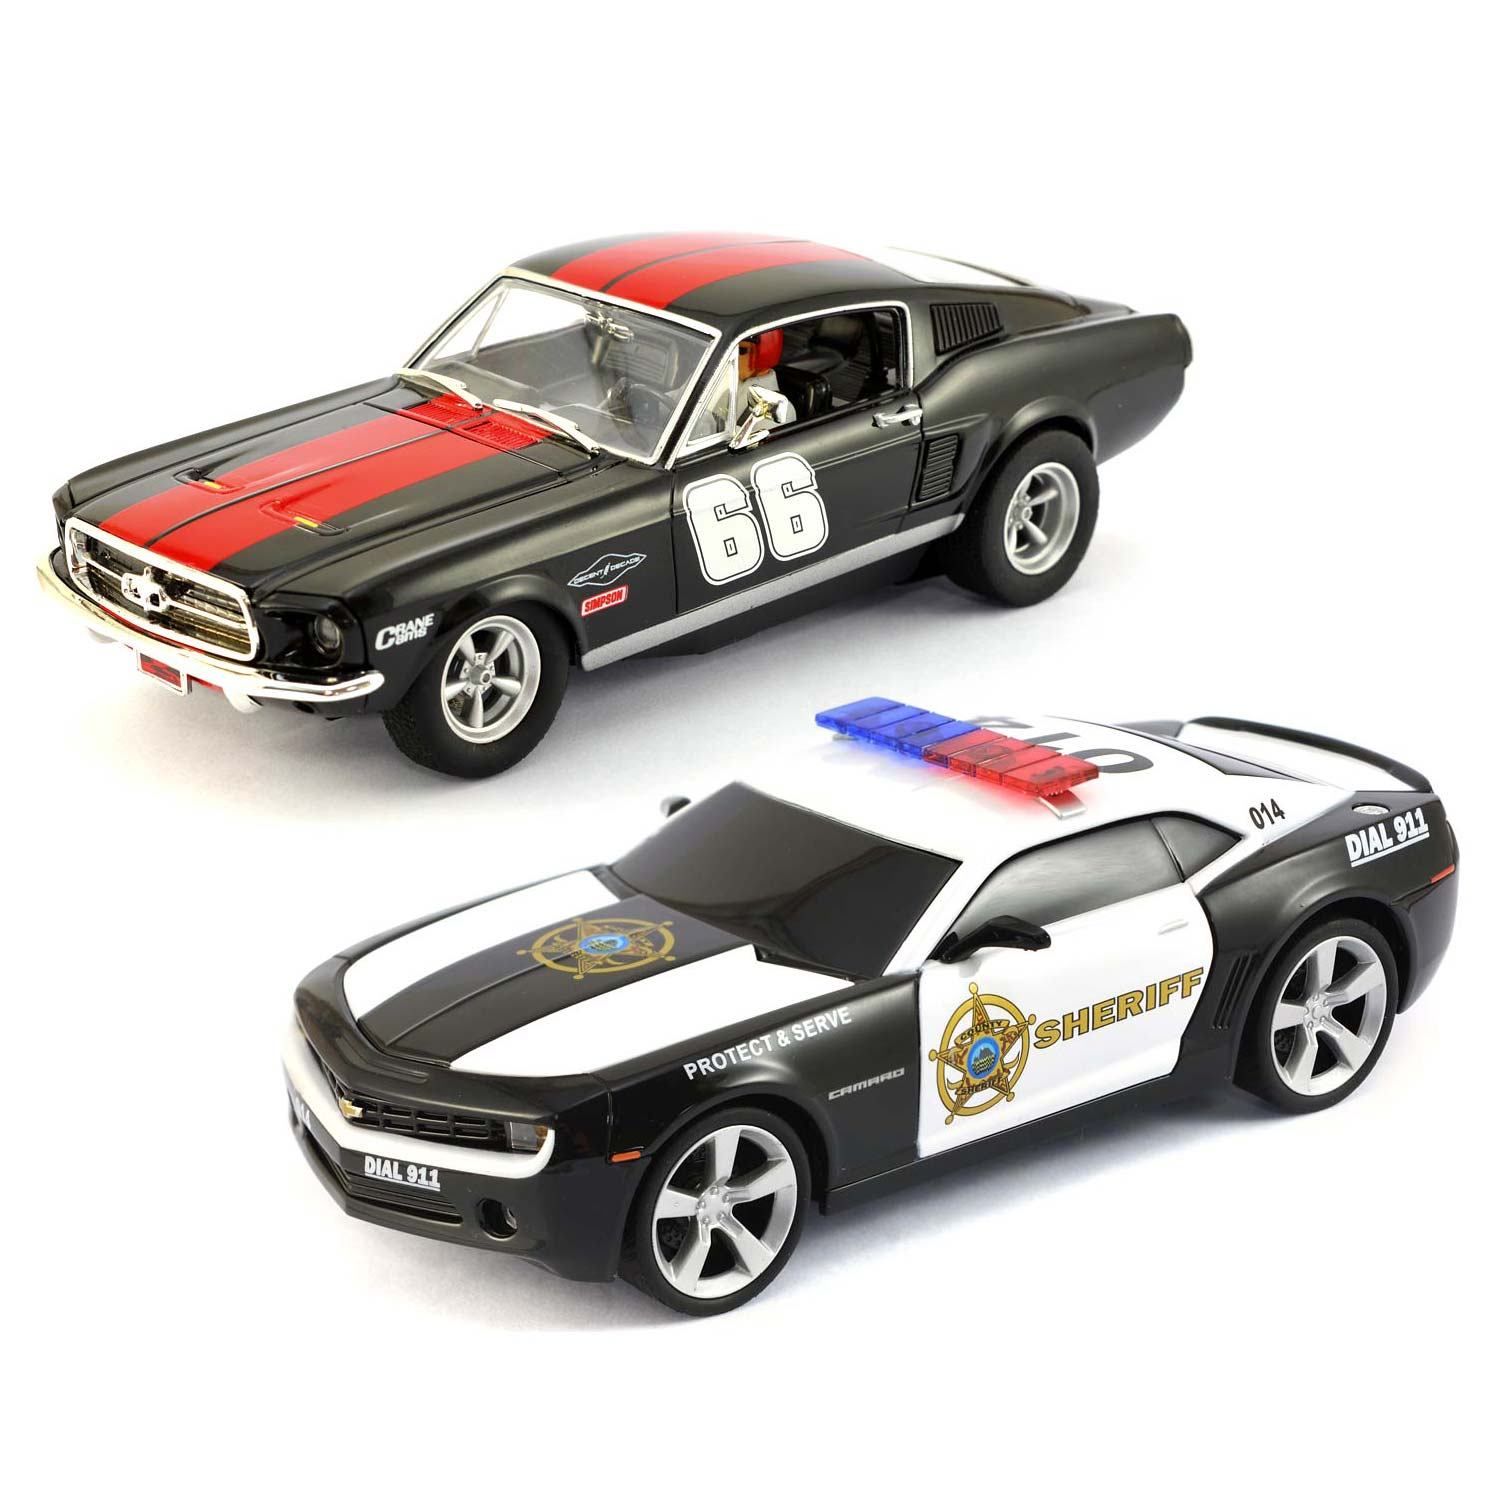 carrera ford mustang gt chevrolet camaro 27553. Black Bedroom Furniture Sets. Home Design Ideas